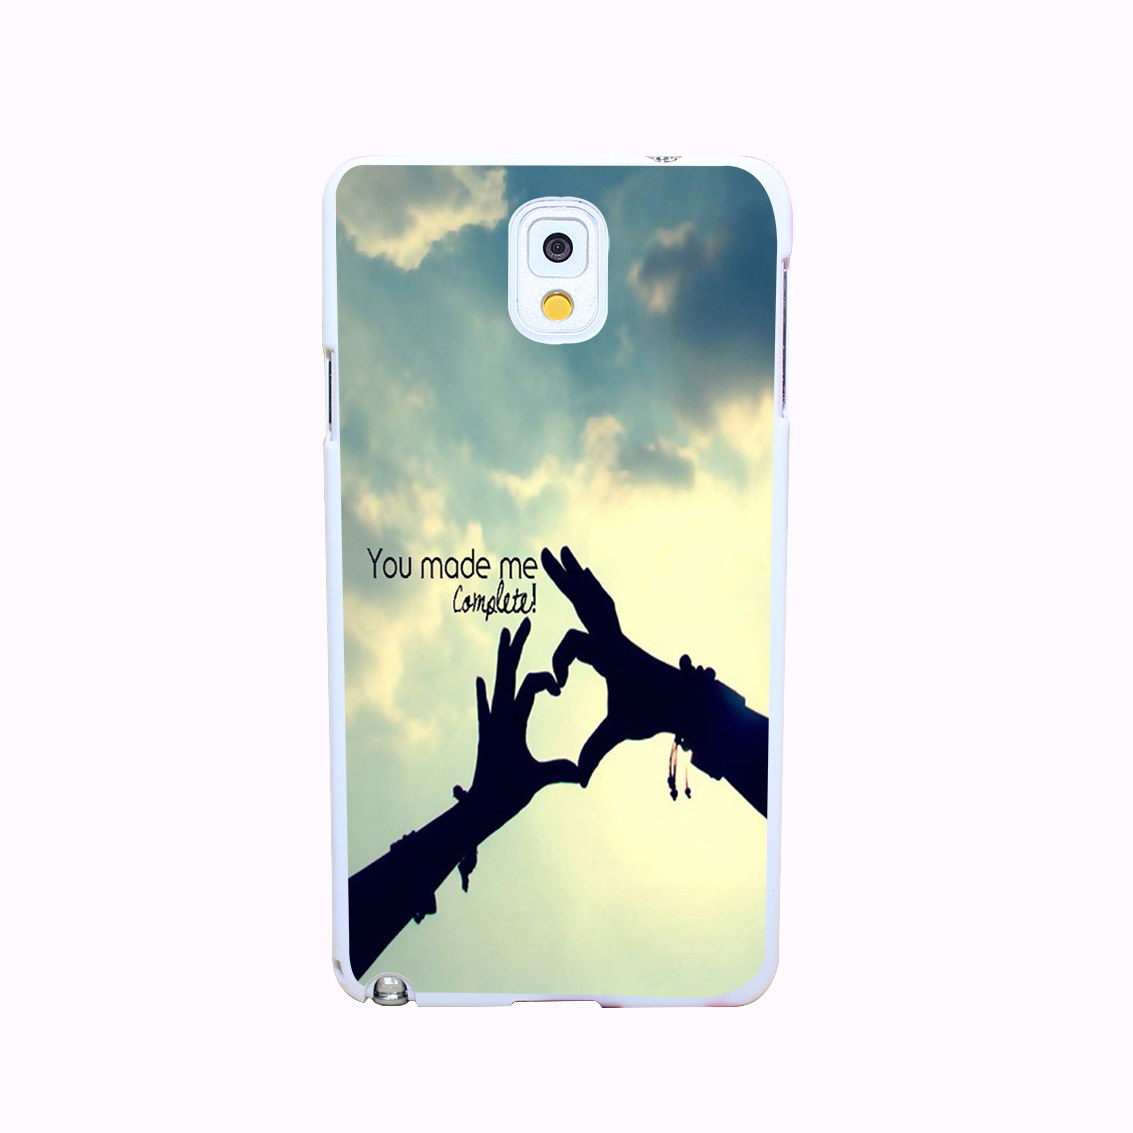 You Made Me Complete Hard White Cover Case for Galaxy A3 A5 A7 A8 Note 2 3 4 5 Protect Phone Cases(China (Mainland))